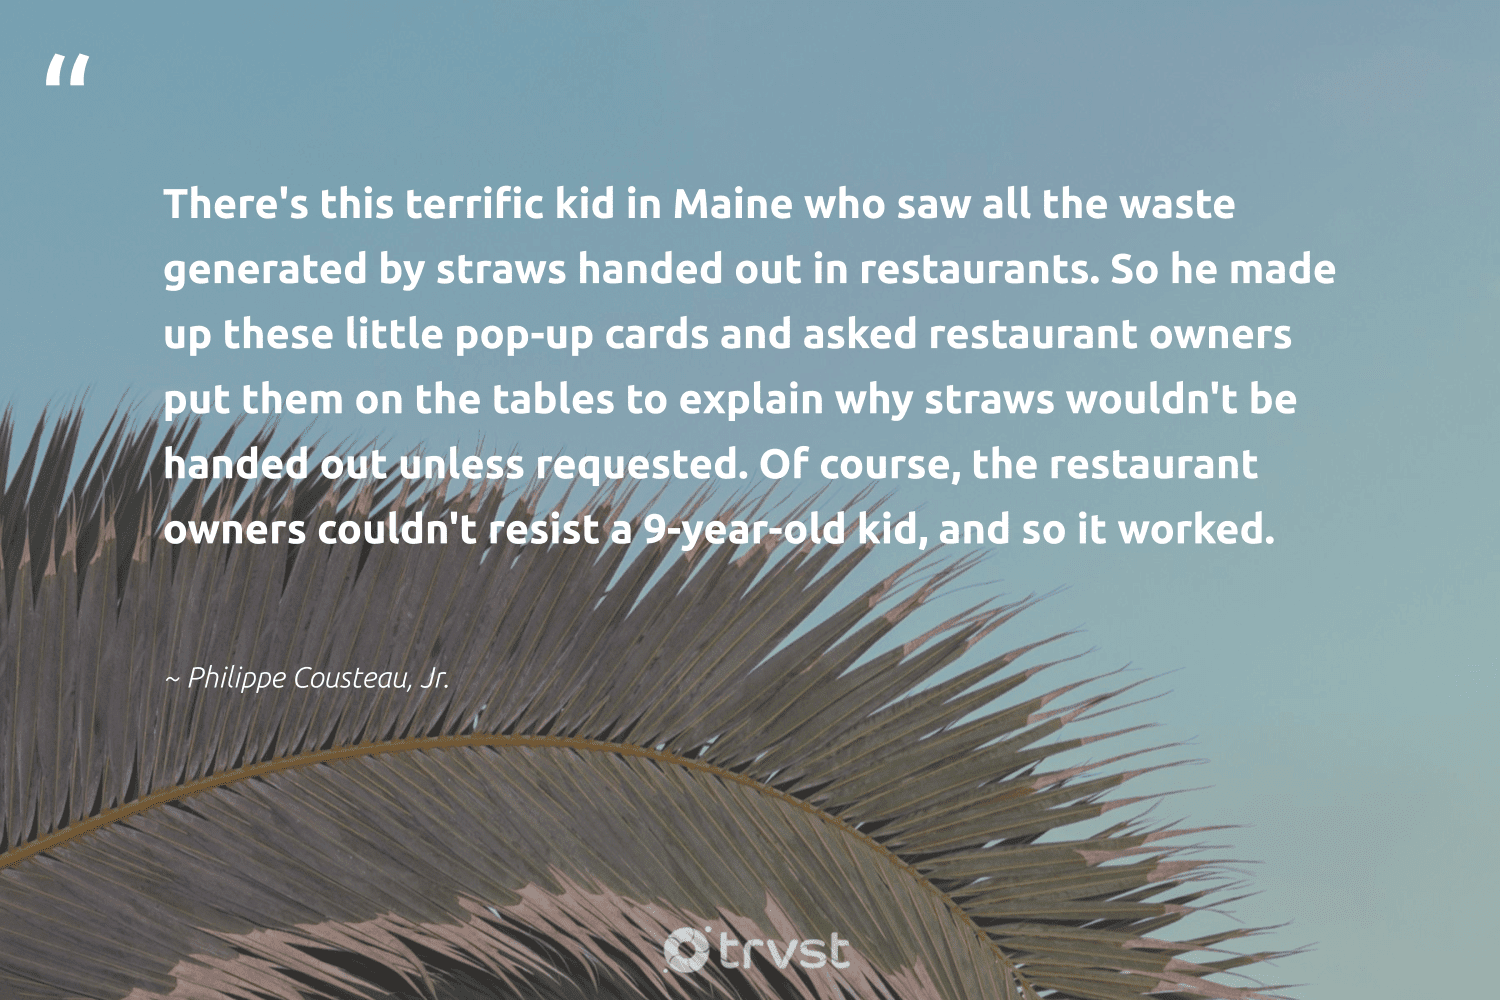 """""""There's this terrific kid in Maine who saw all the waste generated by straws handed out in restaurants. So he made up these little pop-up cards and asked restaurant owners put them on the tables to explain why straws wouldn't be handed out unless requested. Of course, the restaurant owners couldn't resist a 9-year-old kid, and so it worked.""""  - Philippe Cousteau, Jr. #trvst #quotes #waste #straws #resist #changemakers #betterfortheplanet #nowornever #gogreen #activism #greenliving #giveback"""